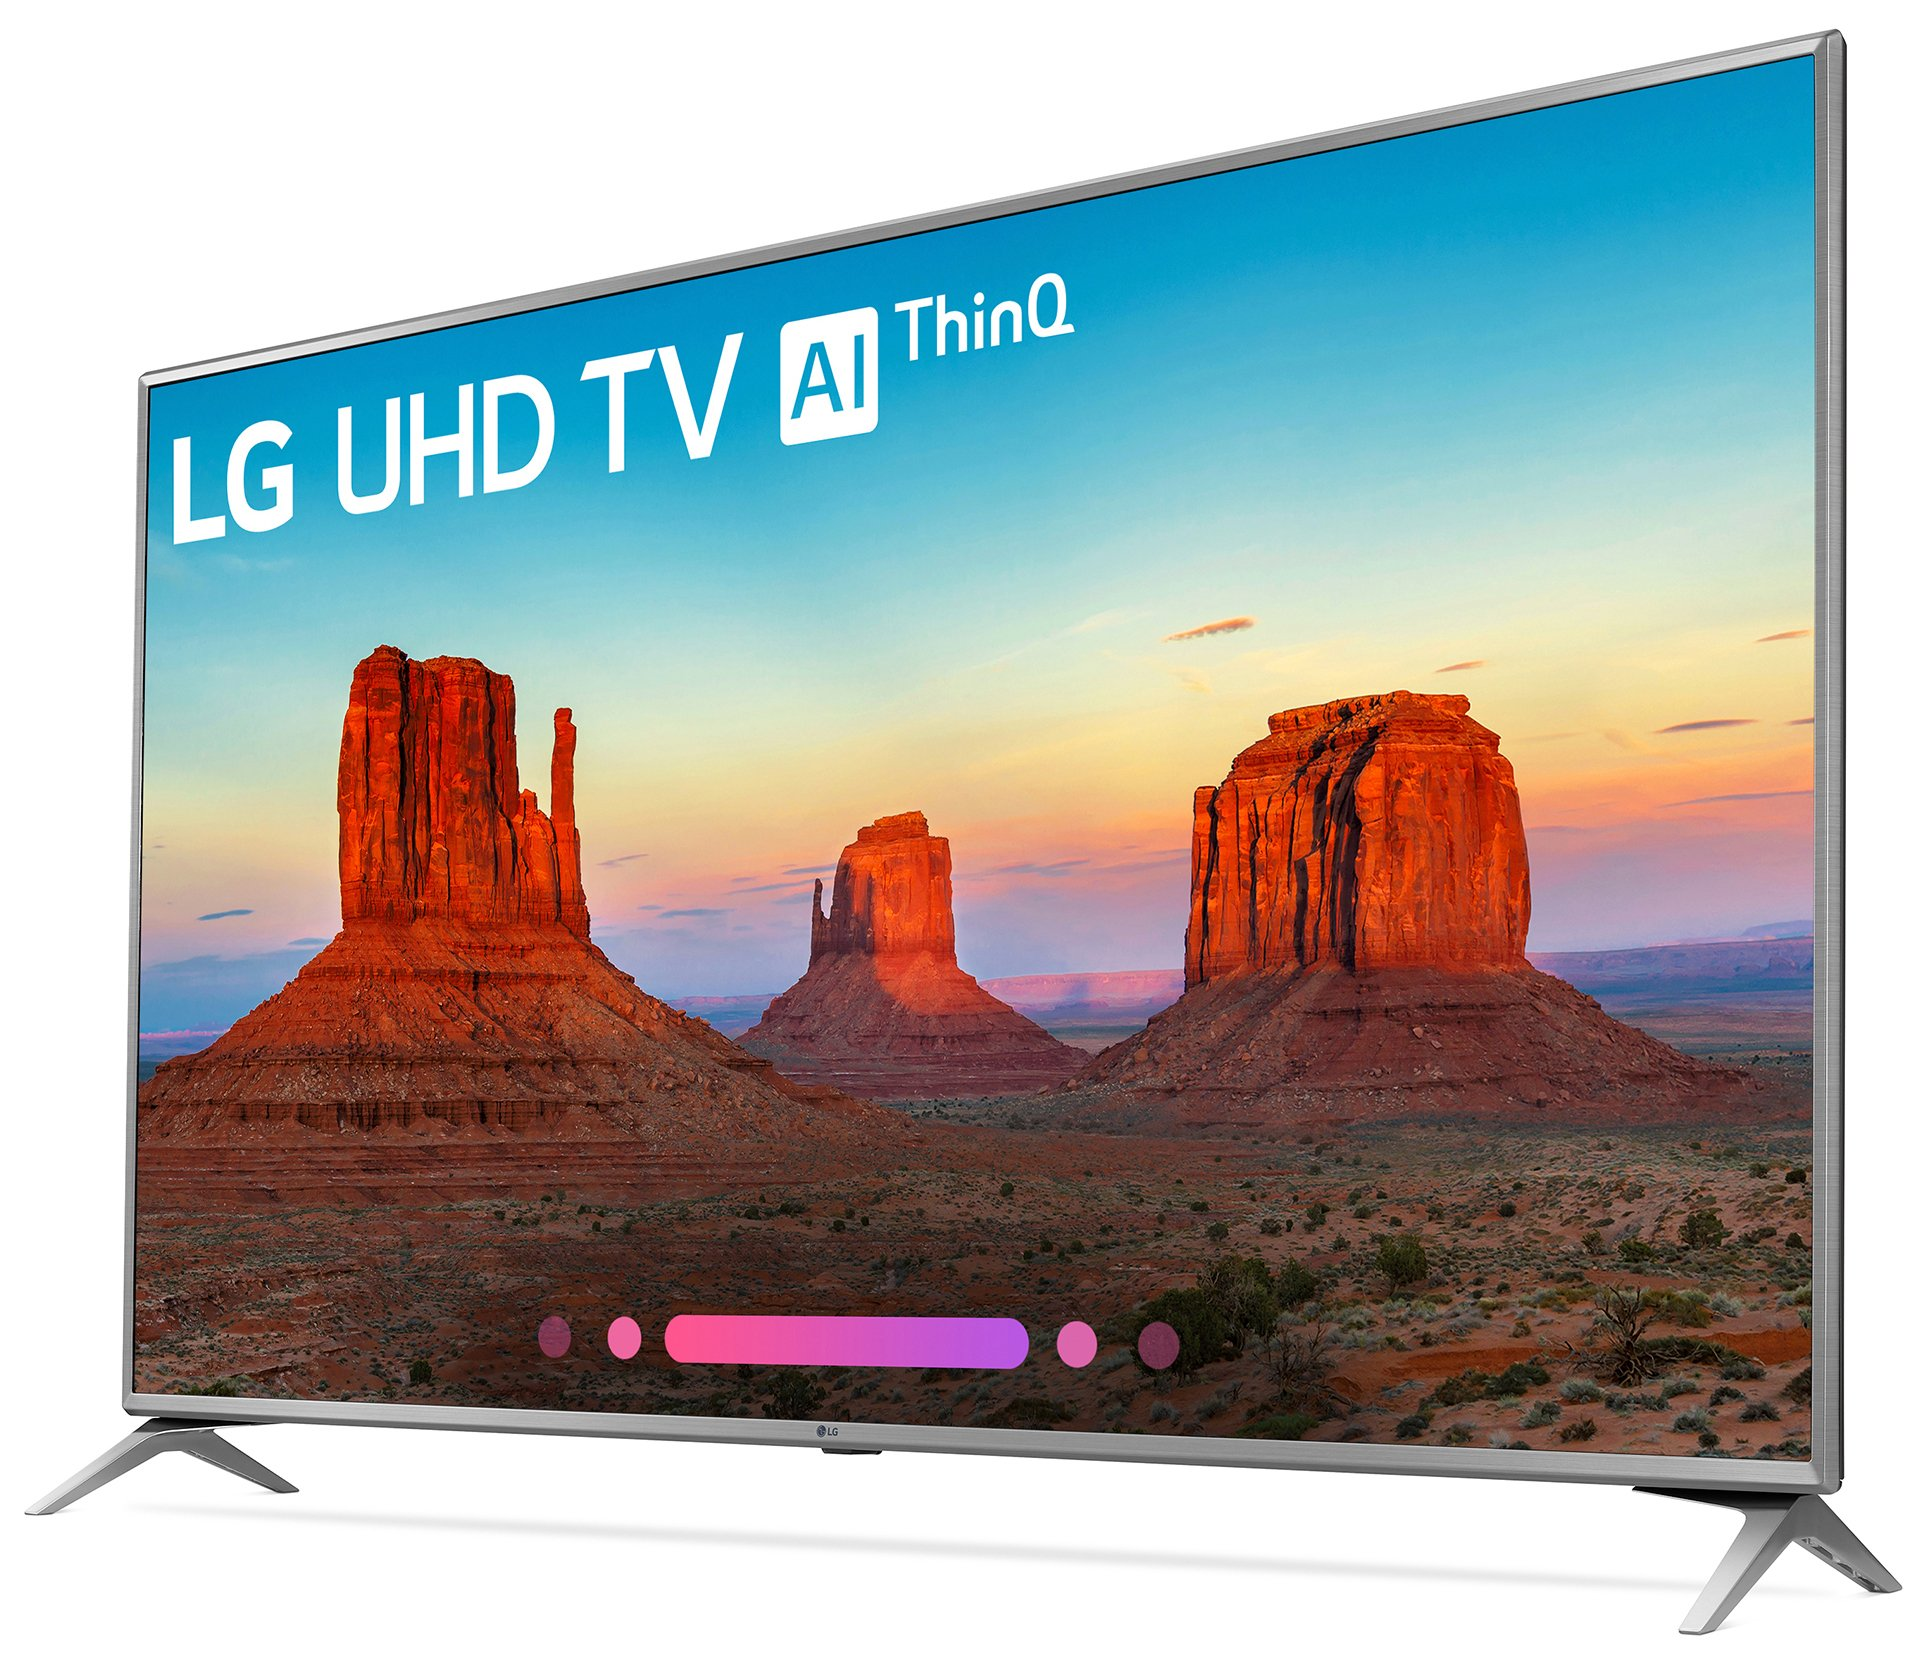 LG Electronics 70UK6570PUBUltra HD Smart LED TV (Modelo 2018): Amazon.es: Electrónica